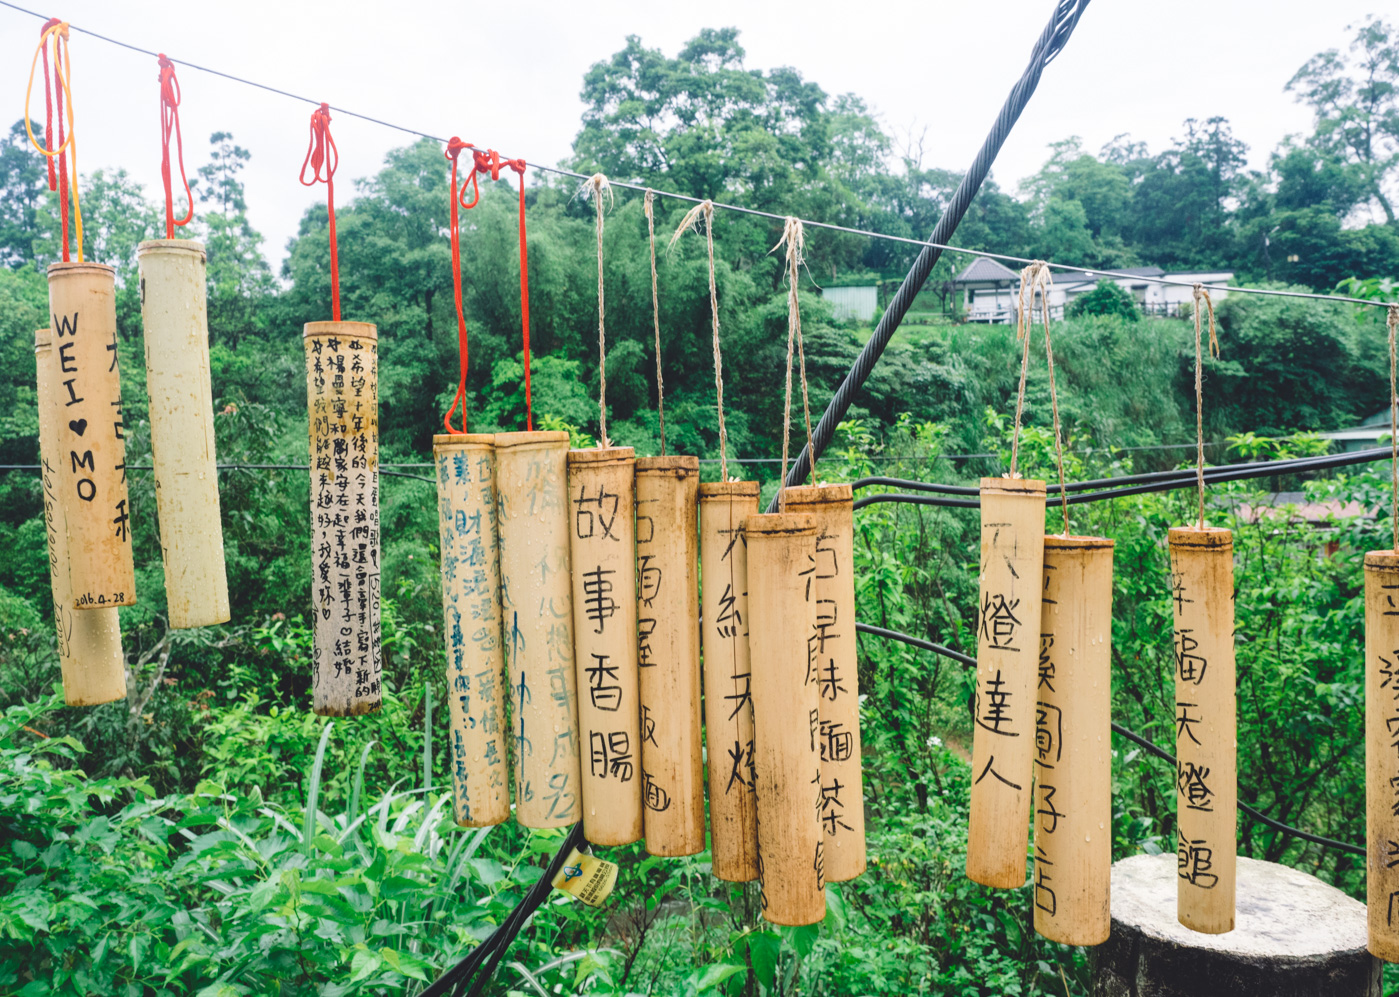 Taiwan - Shifen - Wooden well wishes